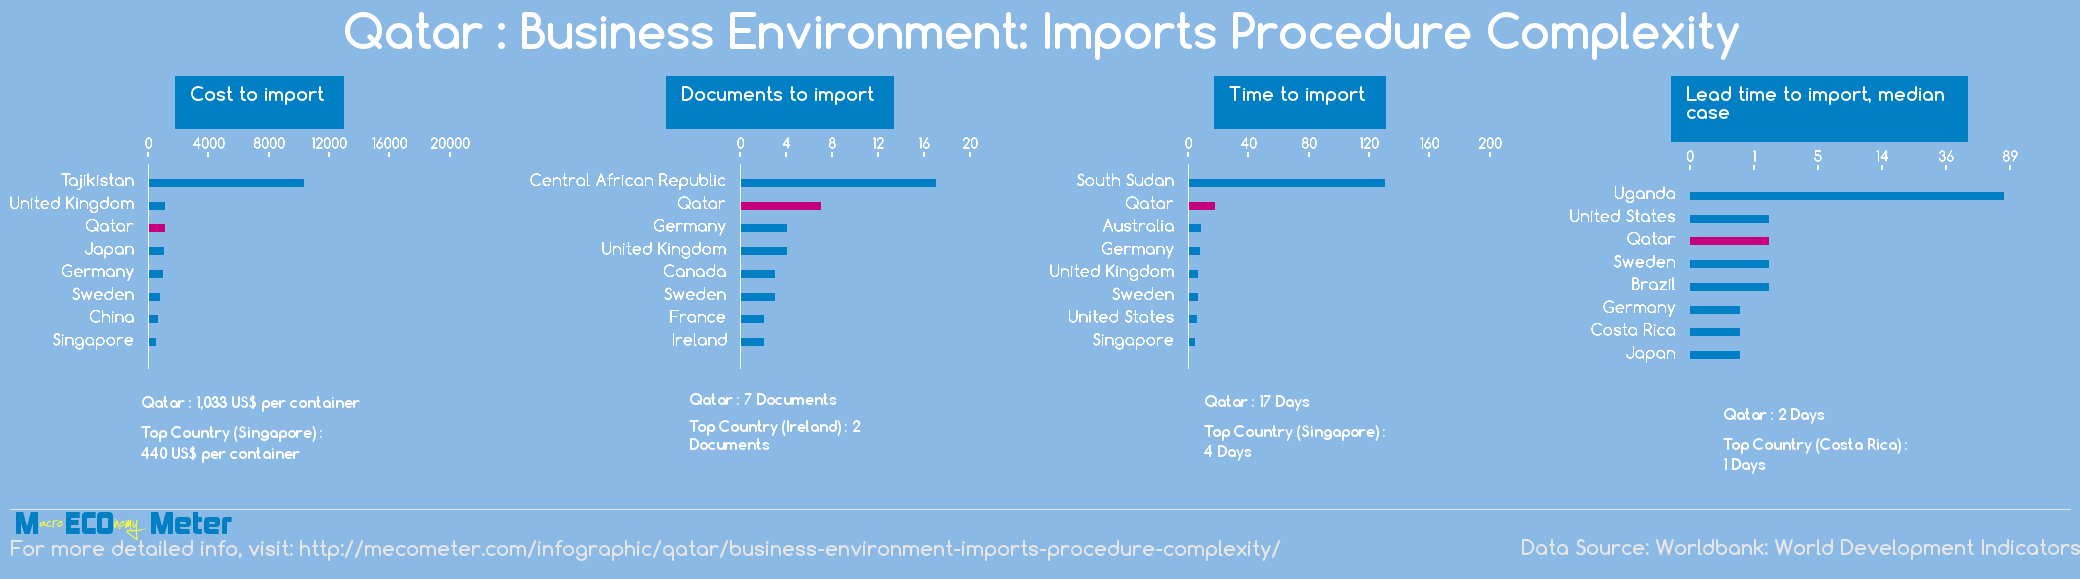 Qatar : Business Environment: Imports Procedure Complexity